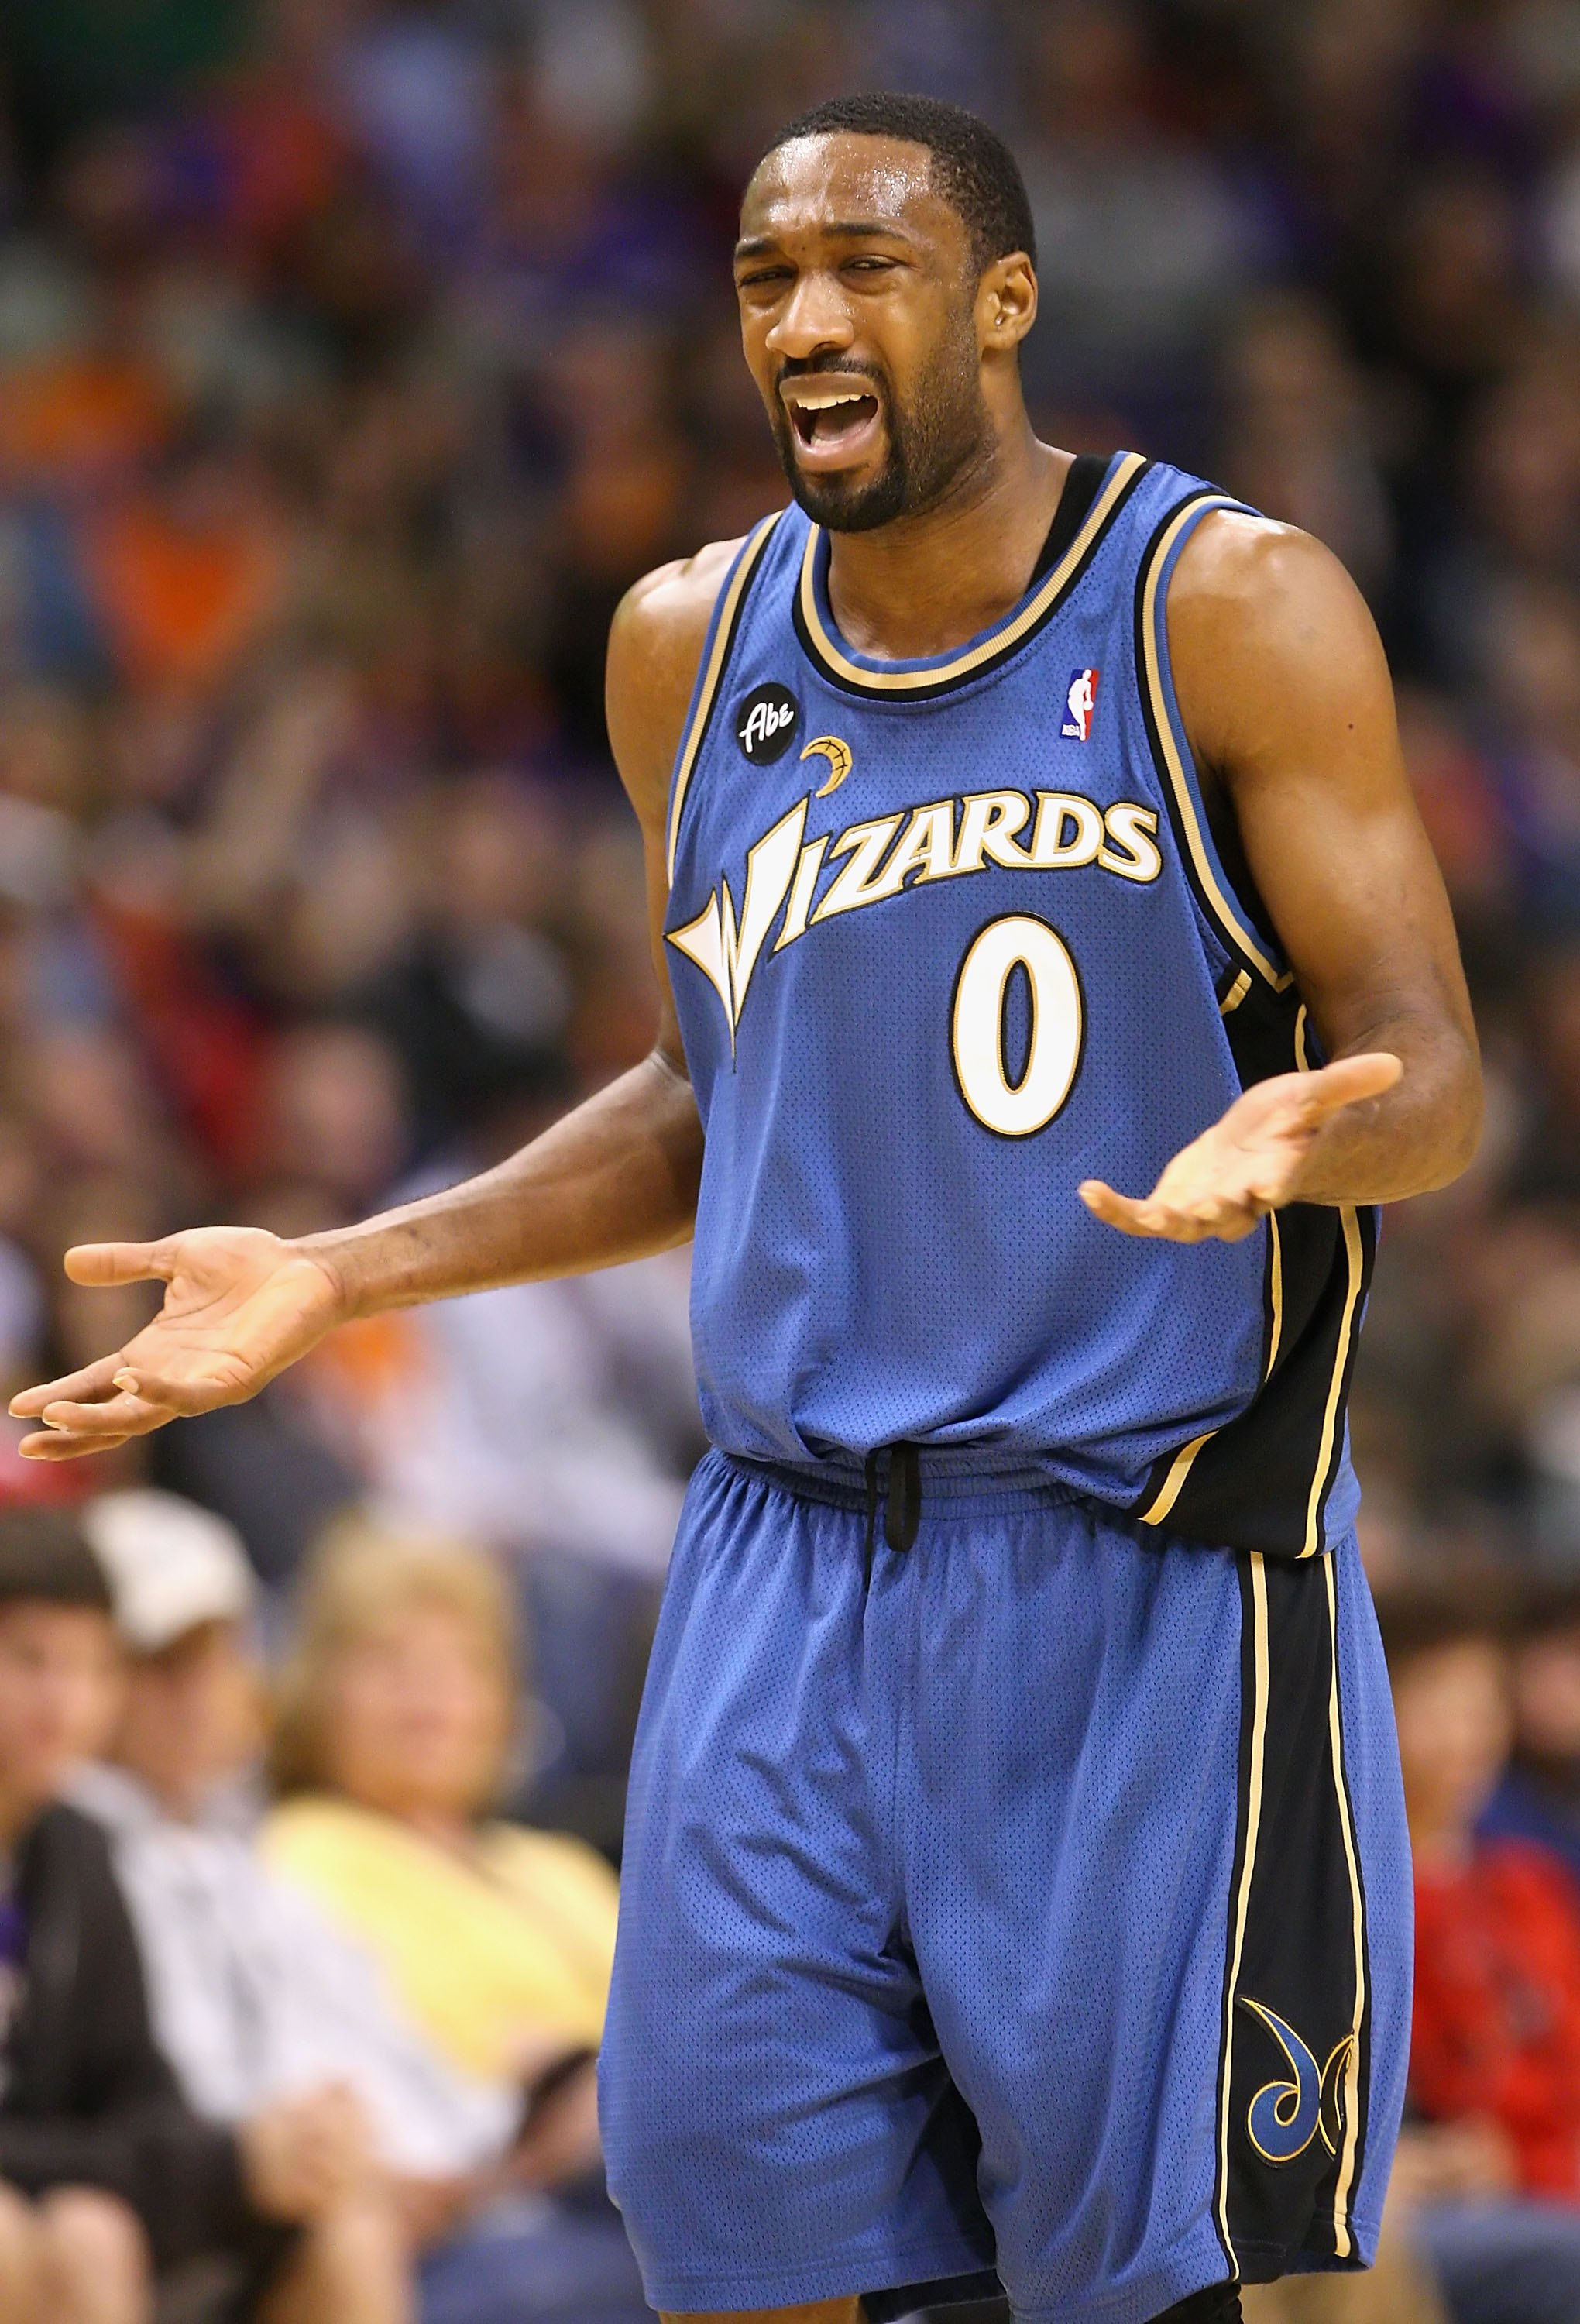 PHOENIX - DECEMBER 19:  Gilbert Arenas #0 of the Washington Wizards reacts during the NBA game against the Phoenix Suns at US Airways Center on December 19, 2009 in Phoenix, Arizona. The Suns defeated the Wizards 121-95. NOTE TO USER: User expressly ackno